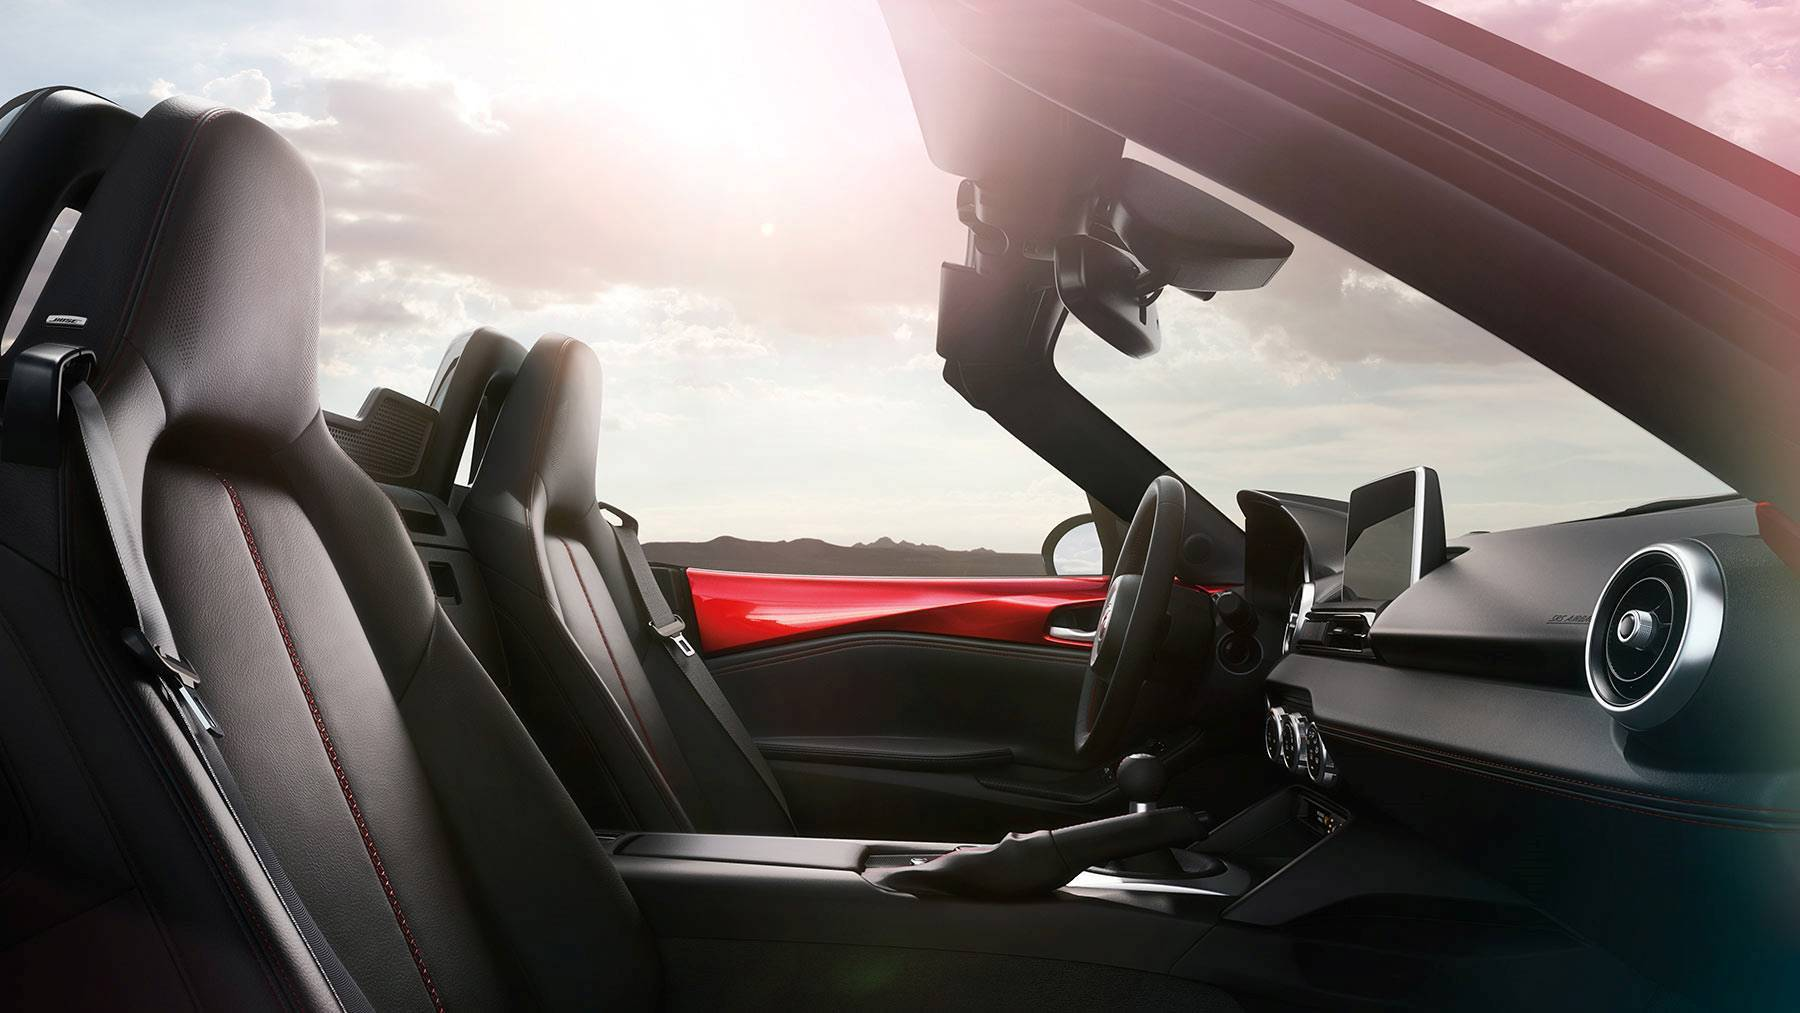 Interior of the 2018 Mazda MX-5 Miata